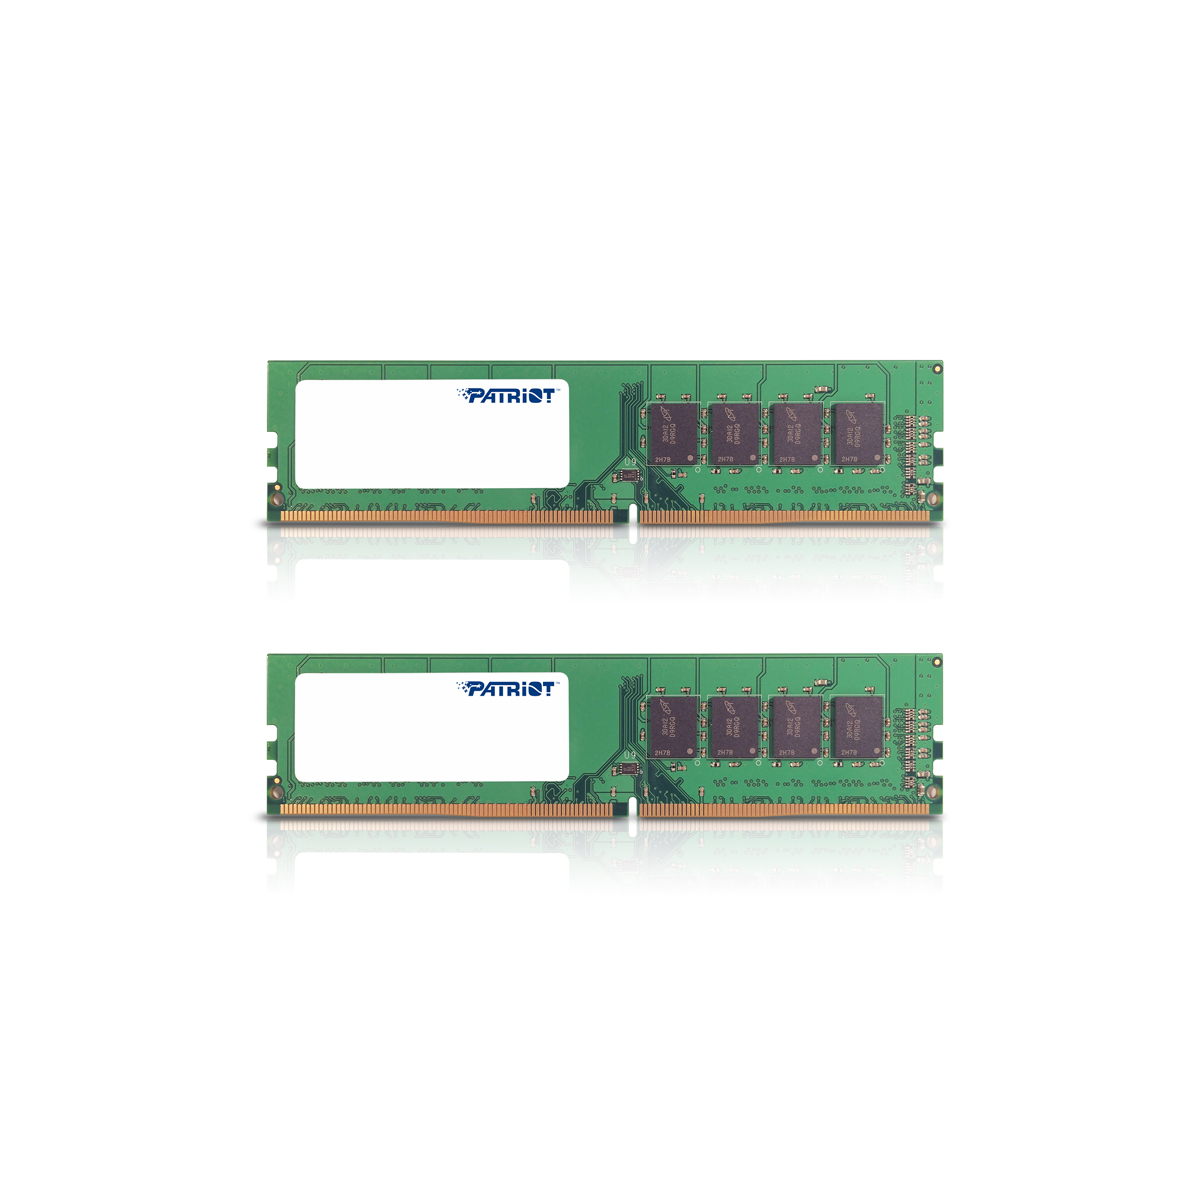 16GB DDR4-2133MHz Patriot CL15, kit 2x8GB s chladičem